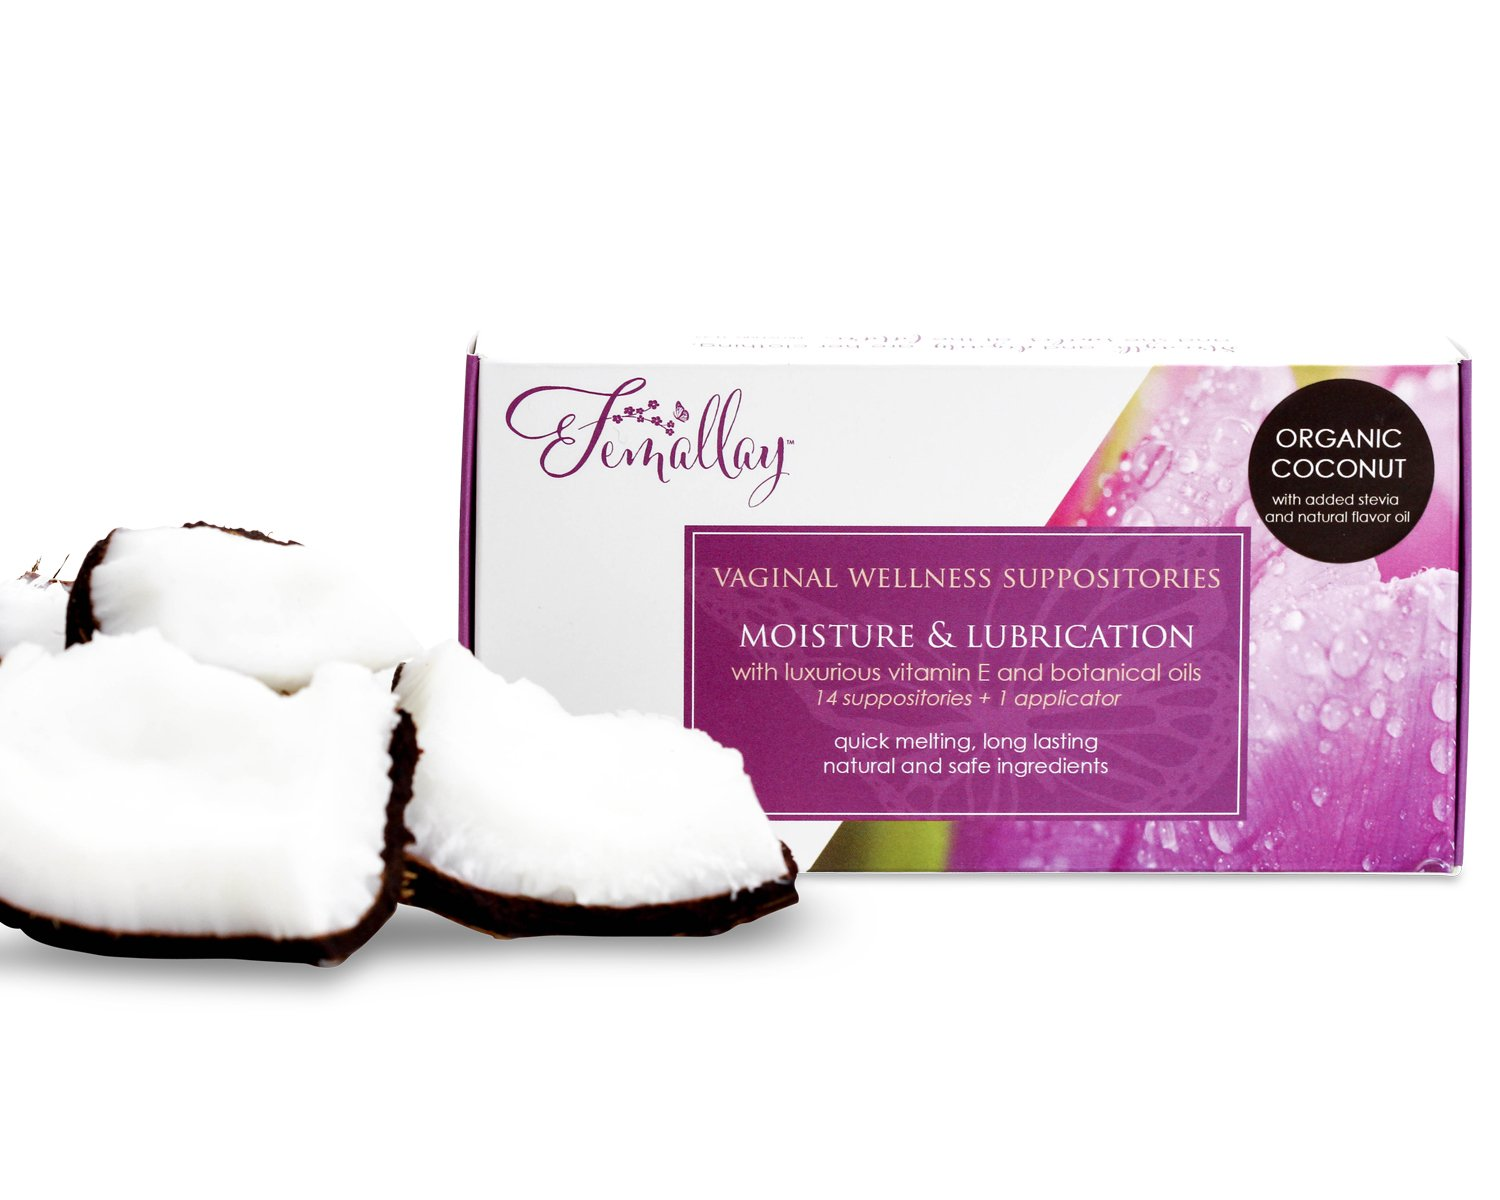 Femallay Creamy Coconut Vitamin E Vaginal Suppositories for Personal Moisturizing & Wellness with Organic Coconut Oil + Vitamin E + Other Botanical Ingredients, Box of 14 + Vaginal Applicator